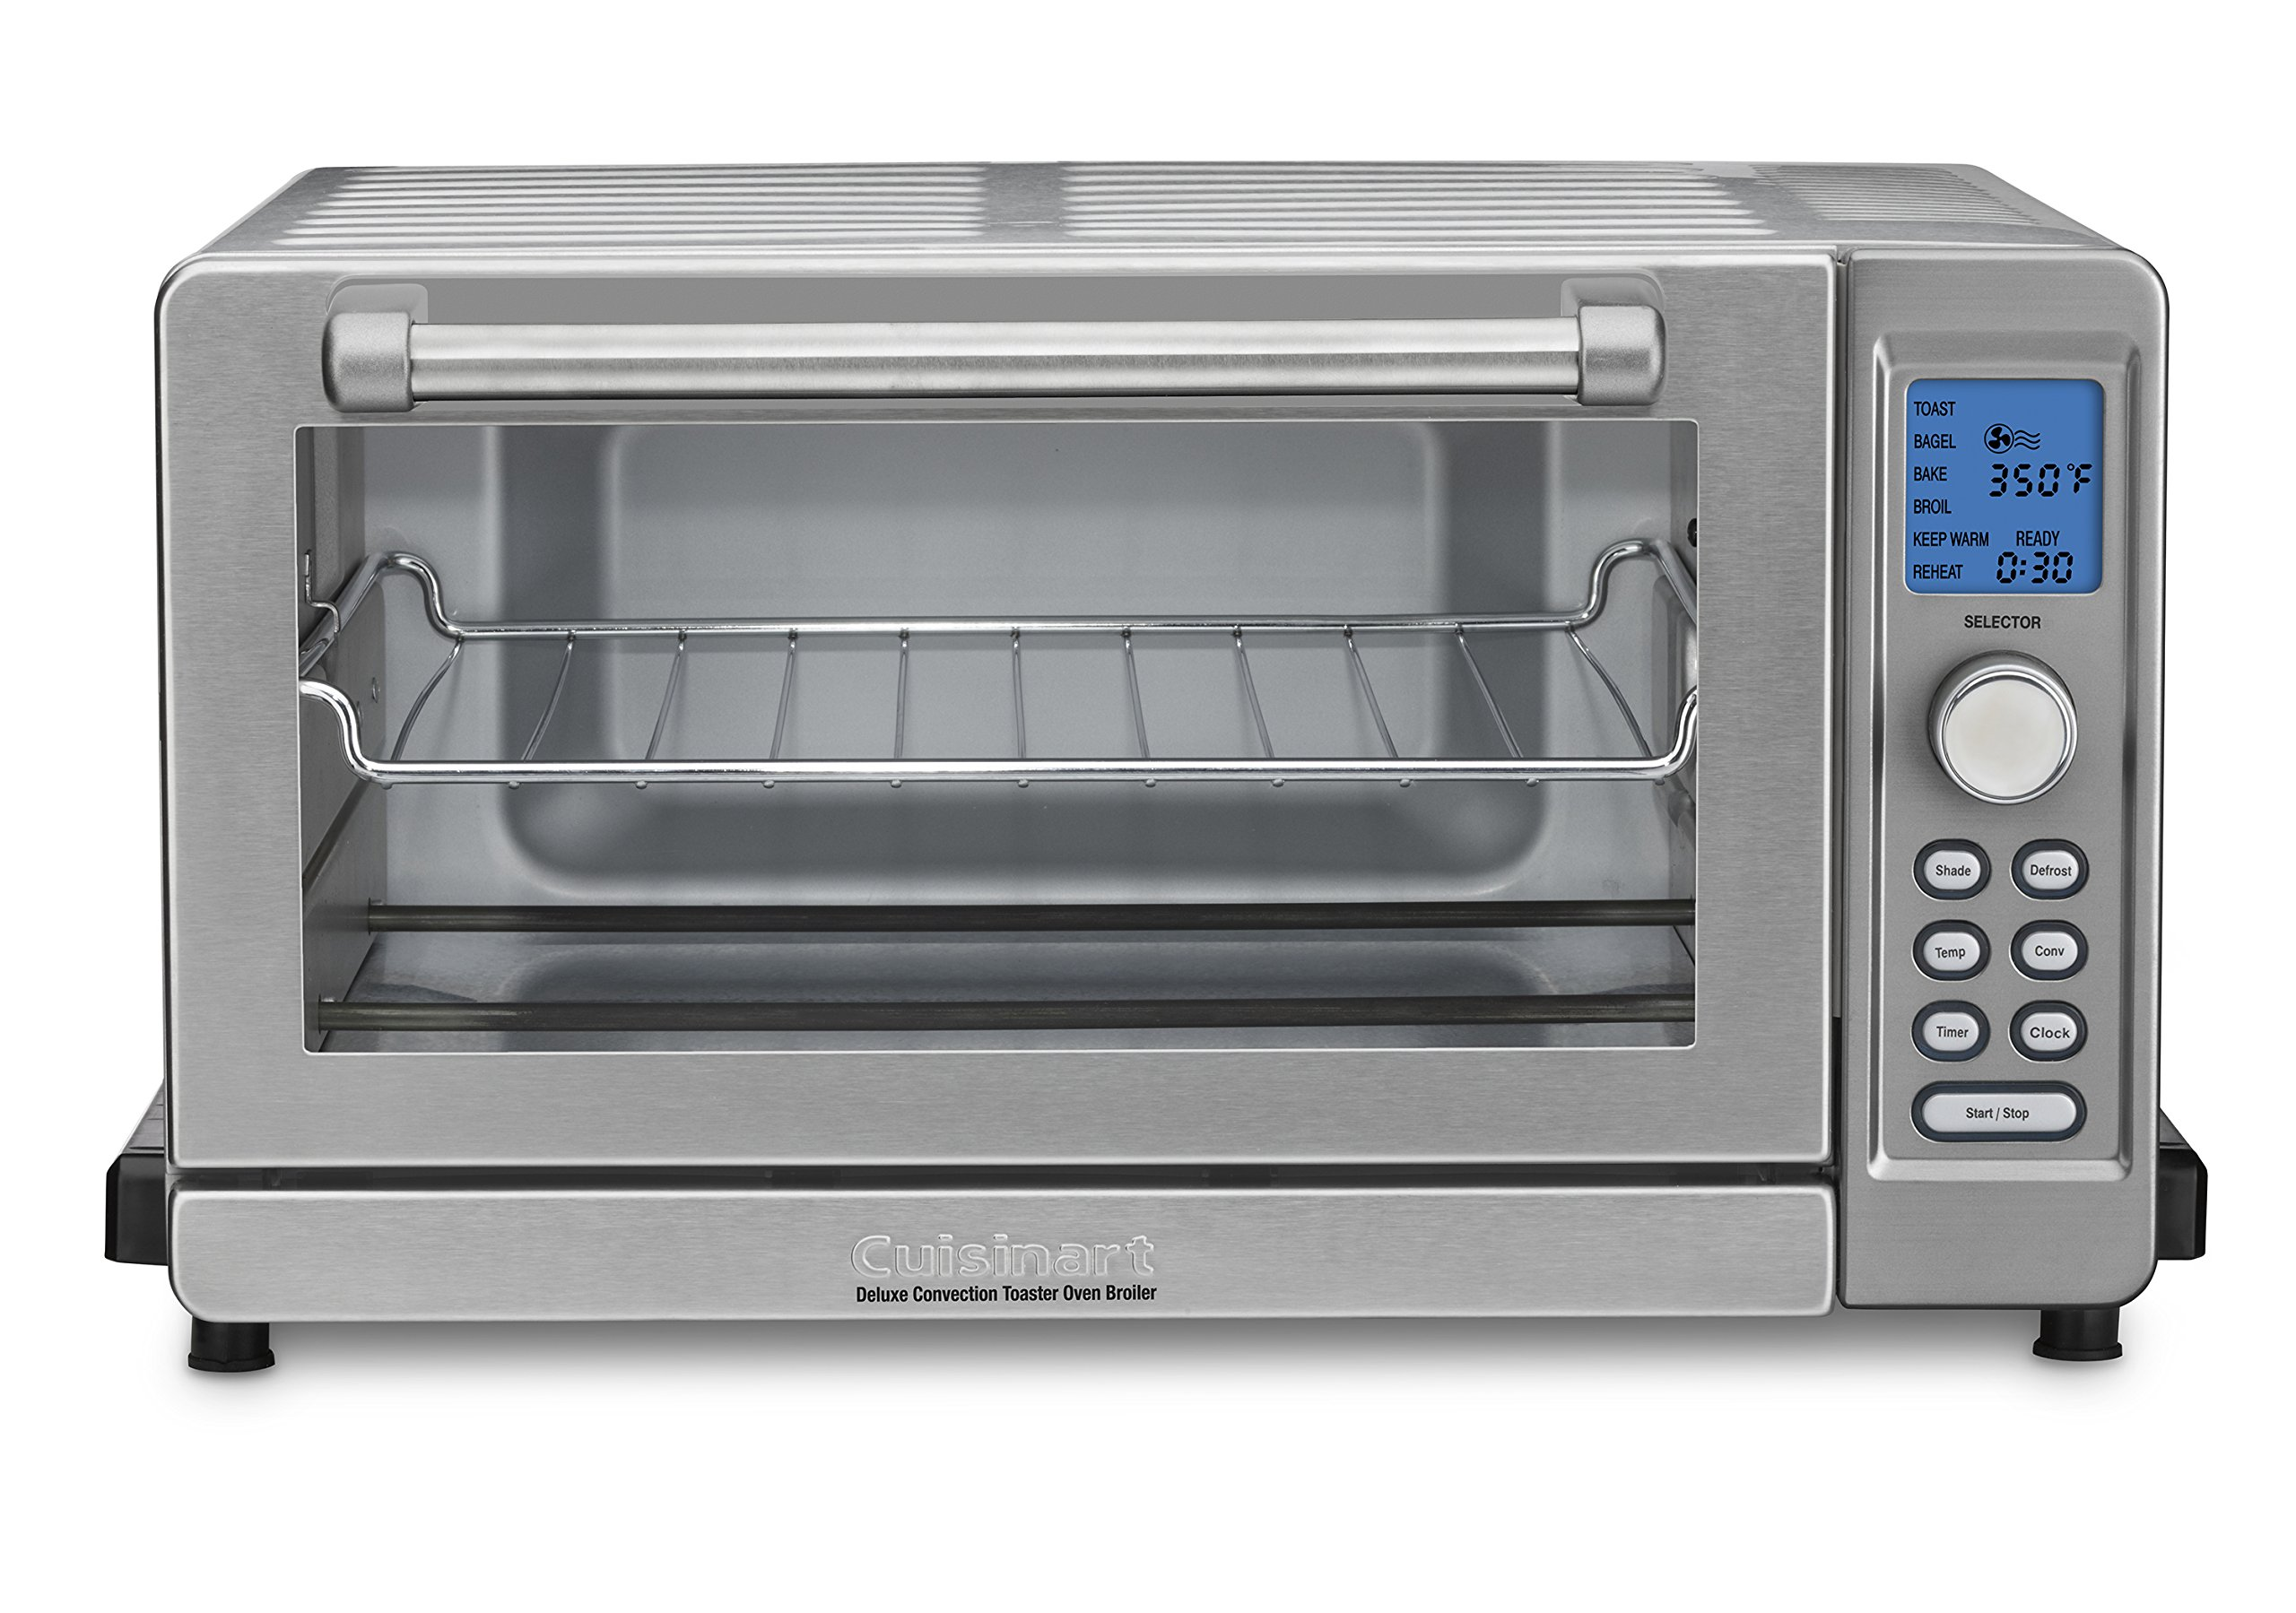 Cuisinart TOB-135N 157 Deluxe Convection Toaster Oven Broiler, One Size Fits All, Stainless steel by Cuisinart